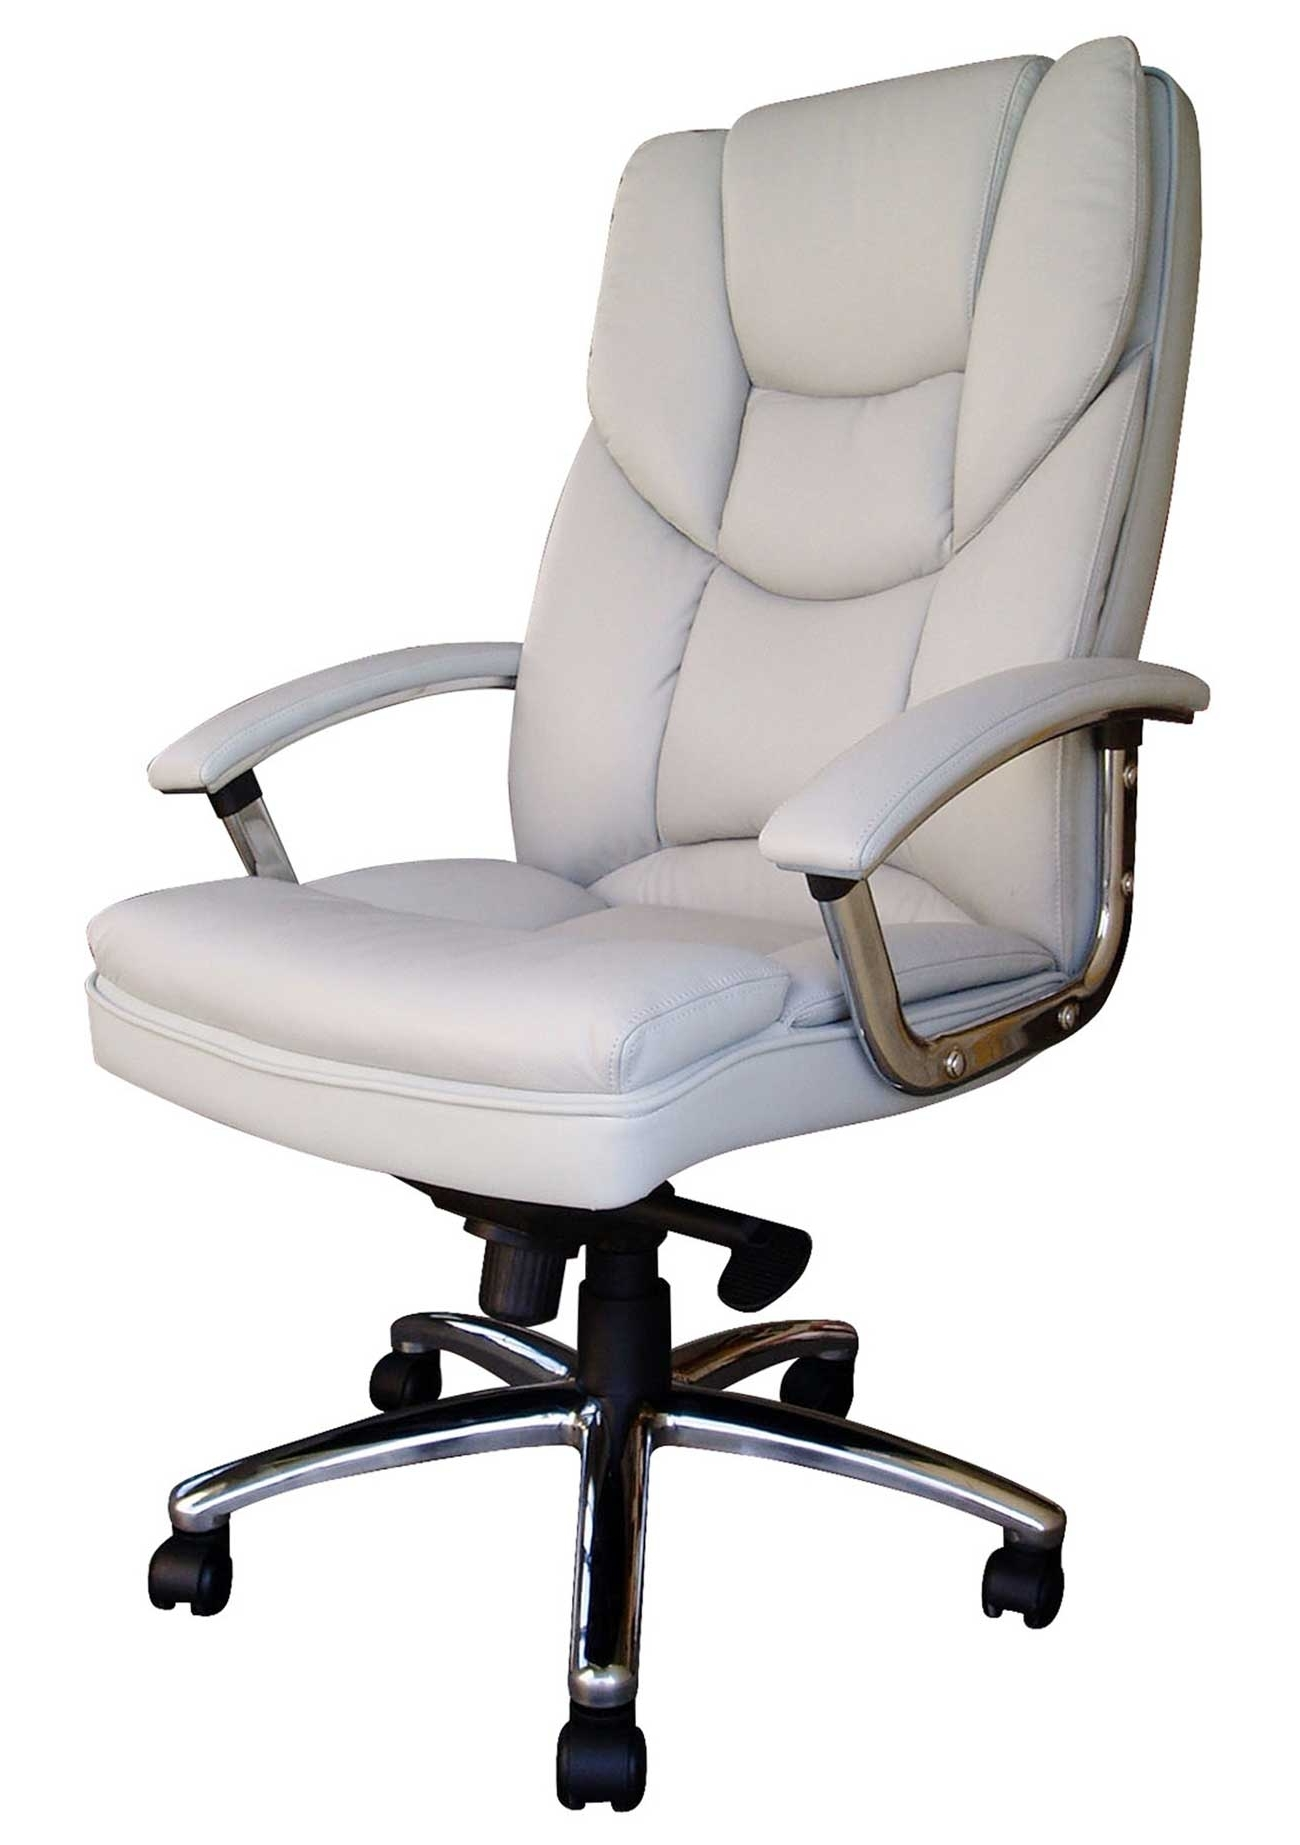 Famous High End Executive Office Chairs With Funiture: White Office Furniture Ideas Using White Leather Swivel (View 8 of 20)